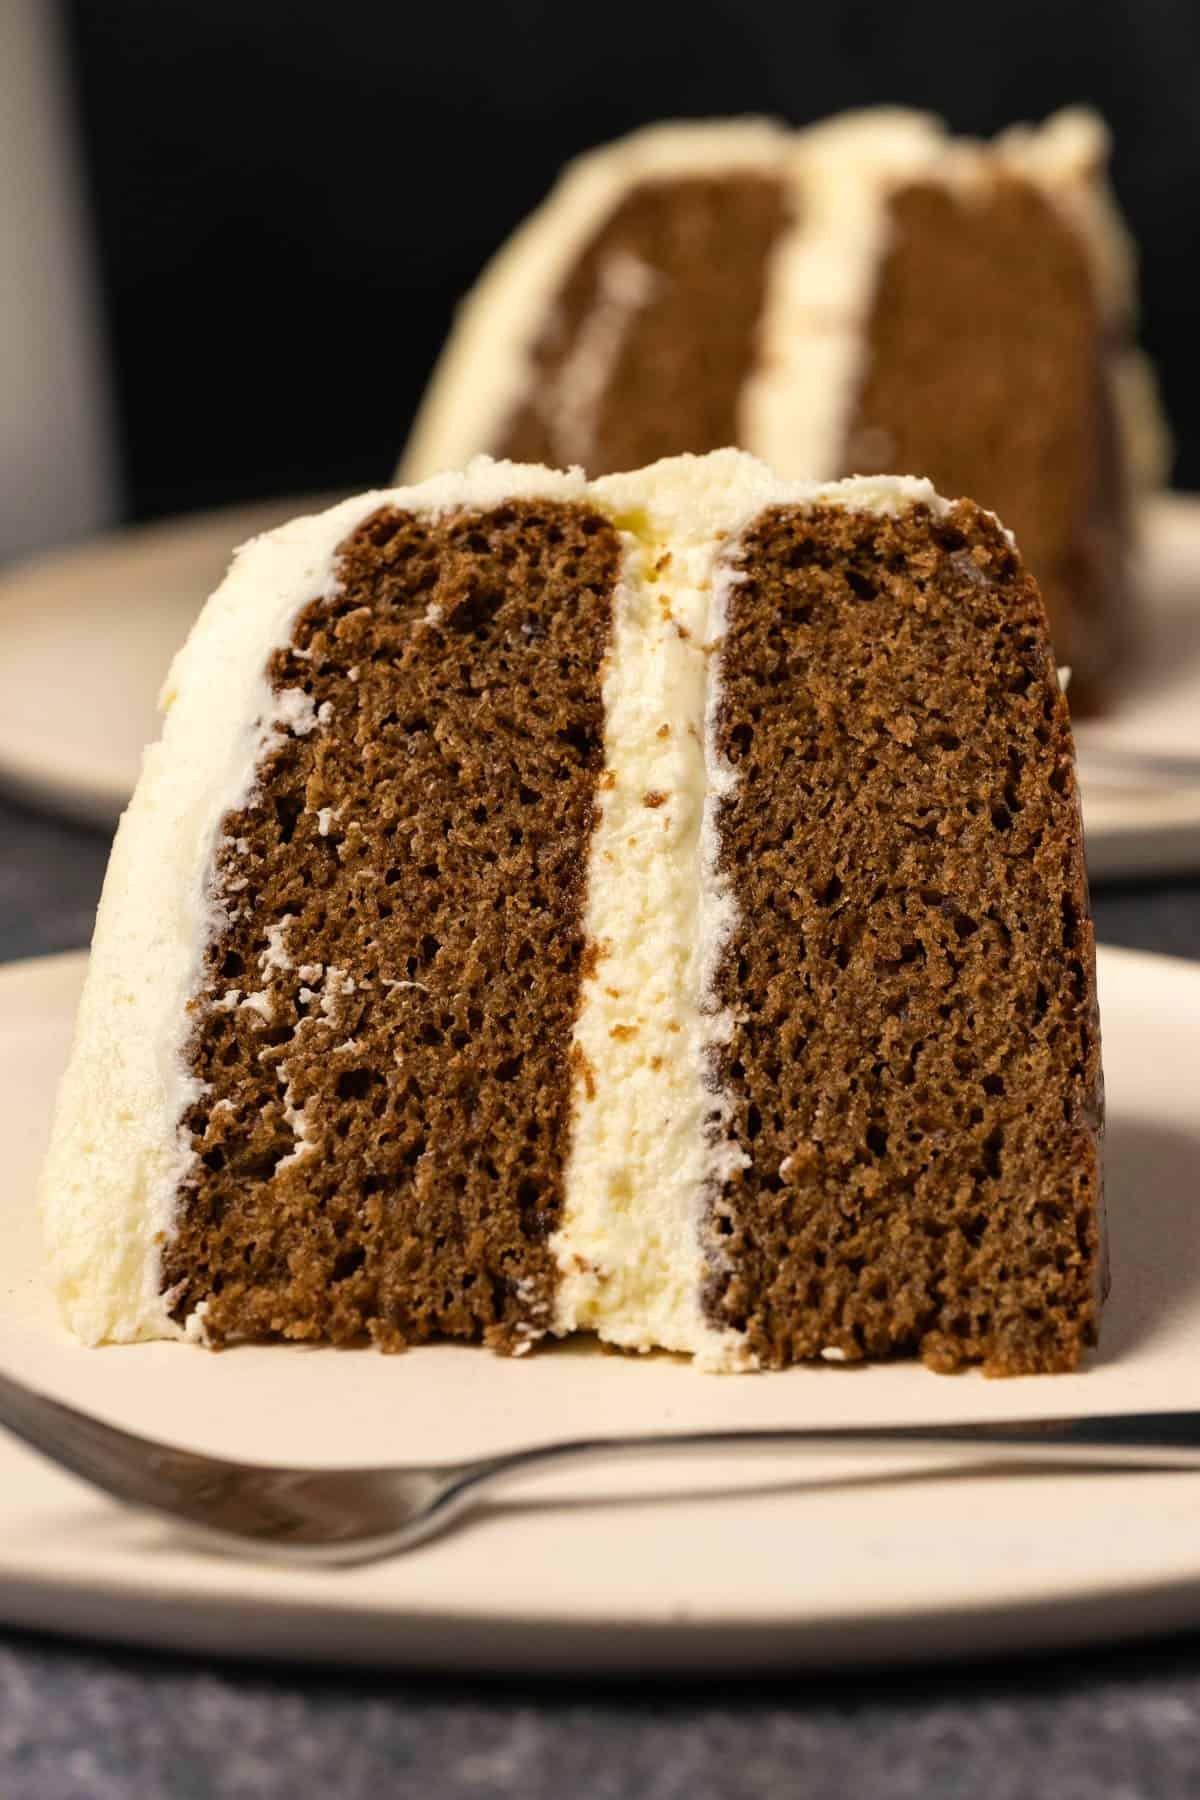 Slice of frosted vegan gingerbread cake on a white plate.